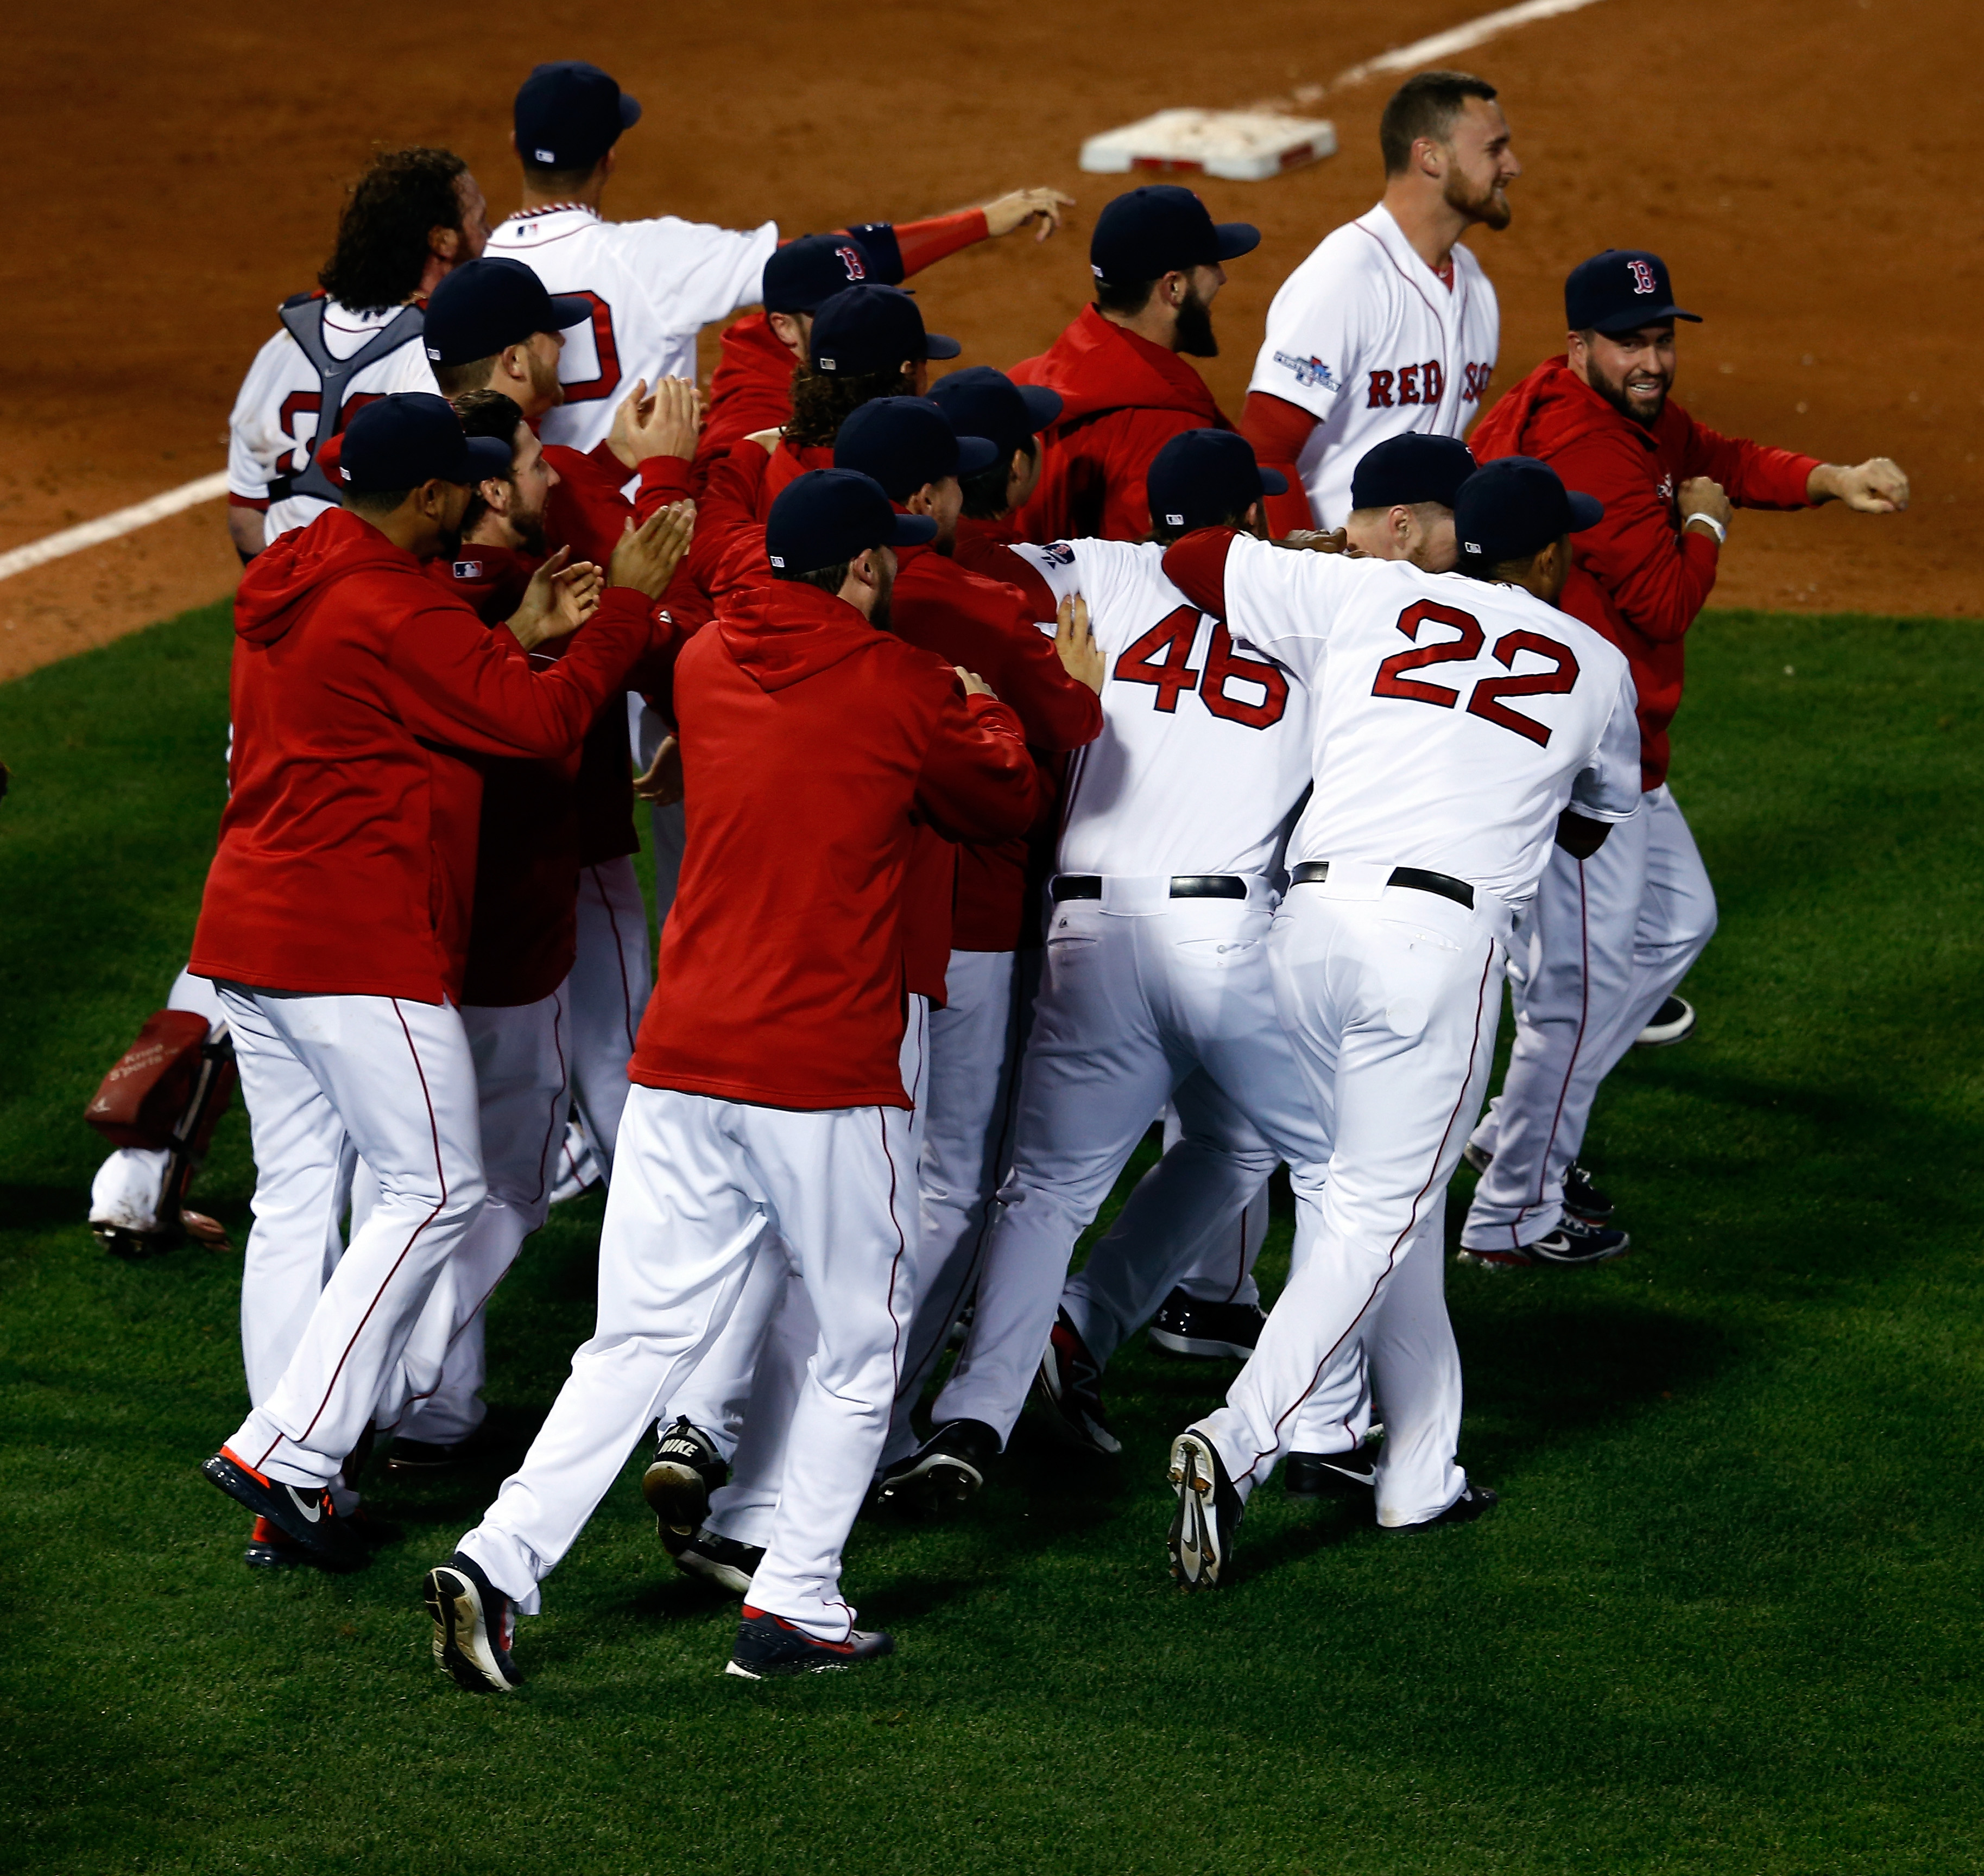 The 2013 Red Sox celebrate their LCS win -- accomplished after they lost Game 1